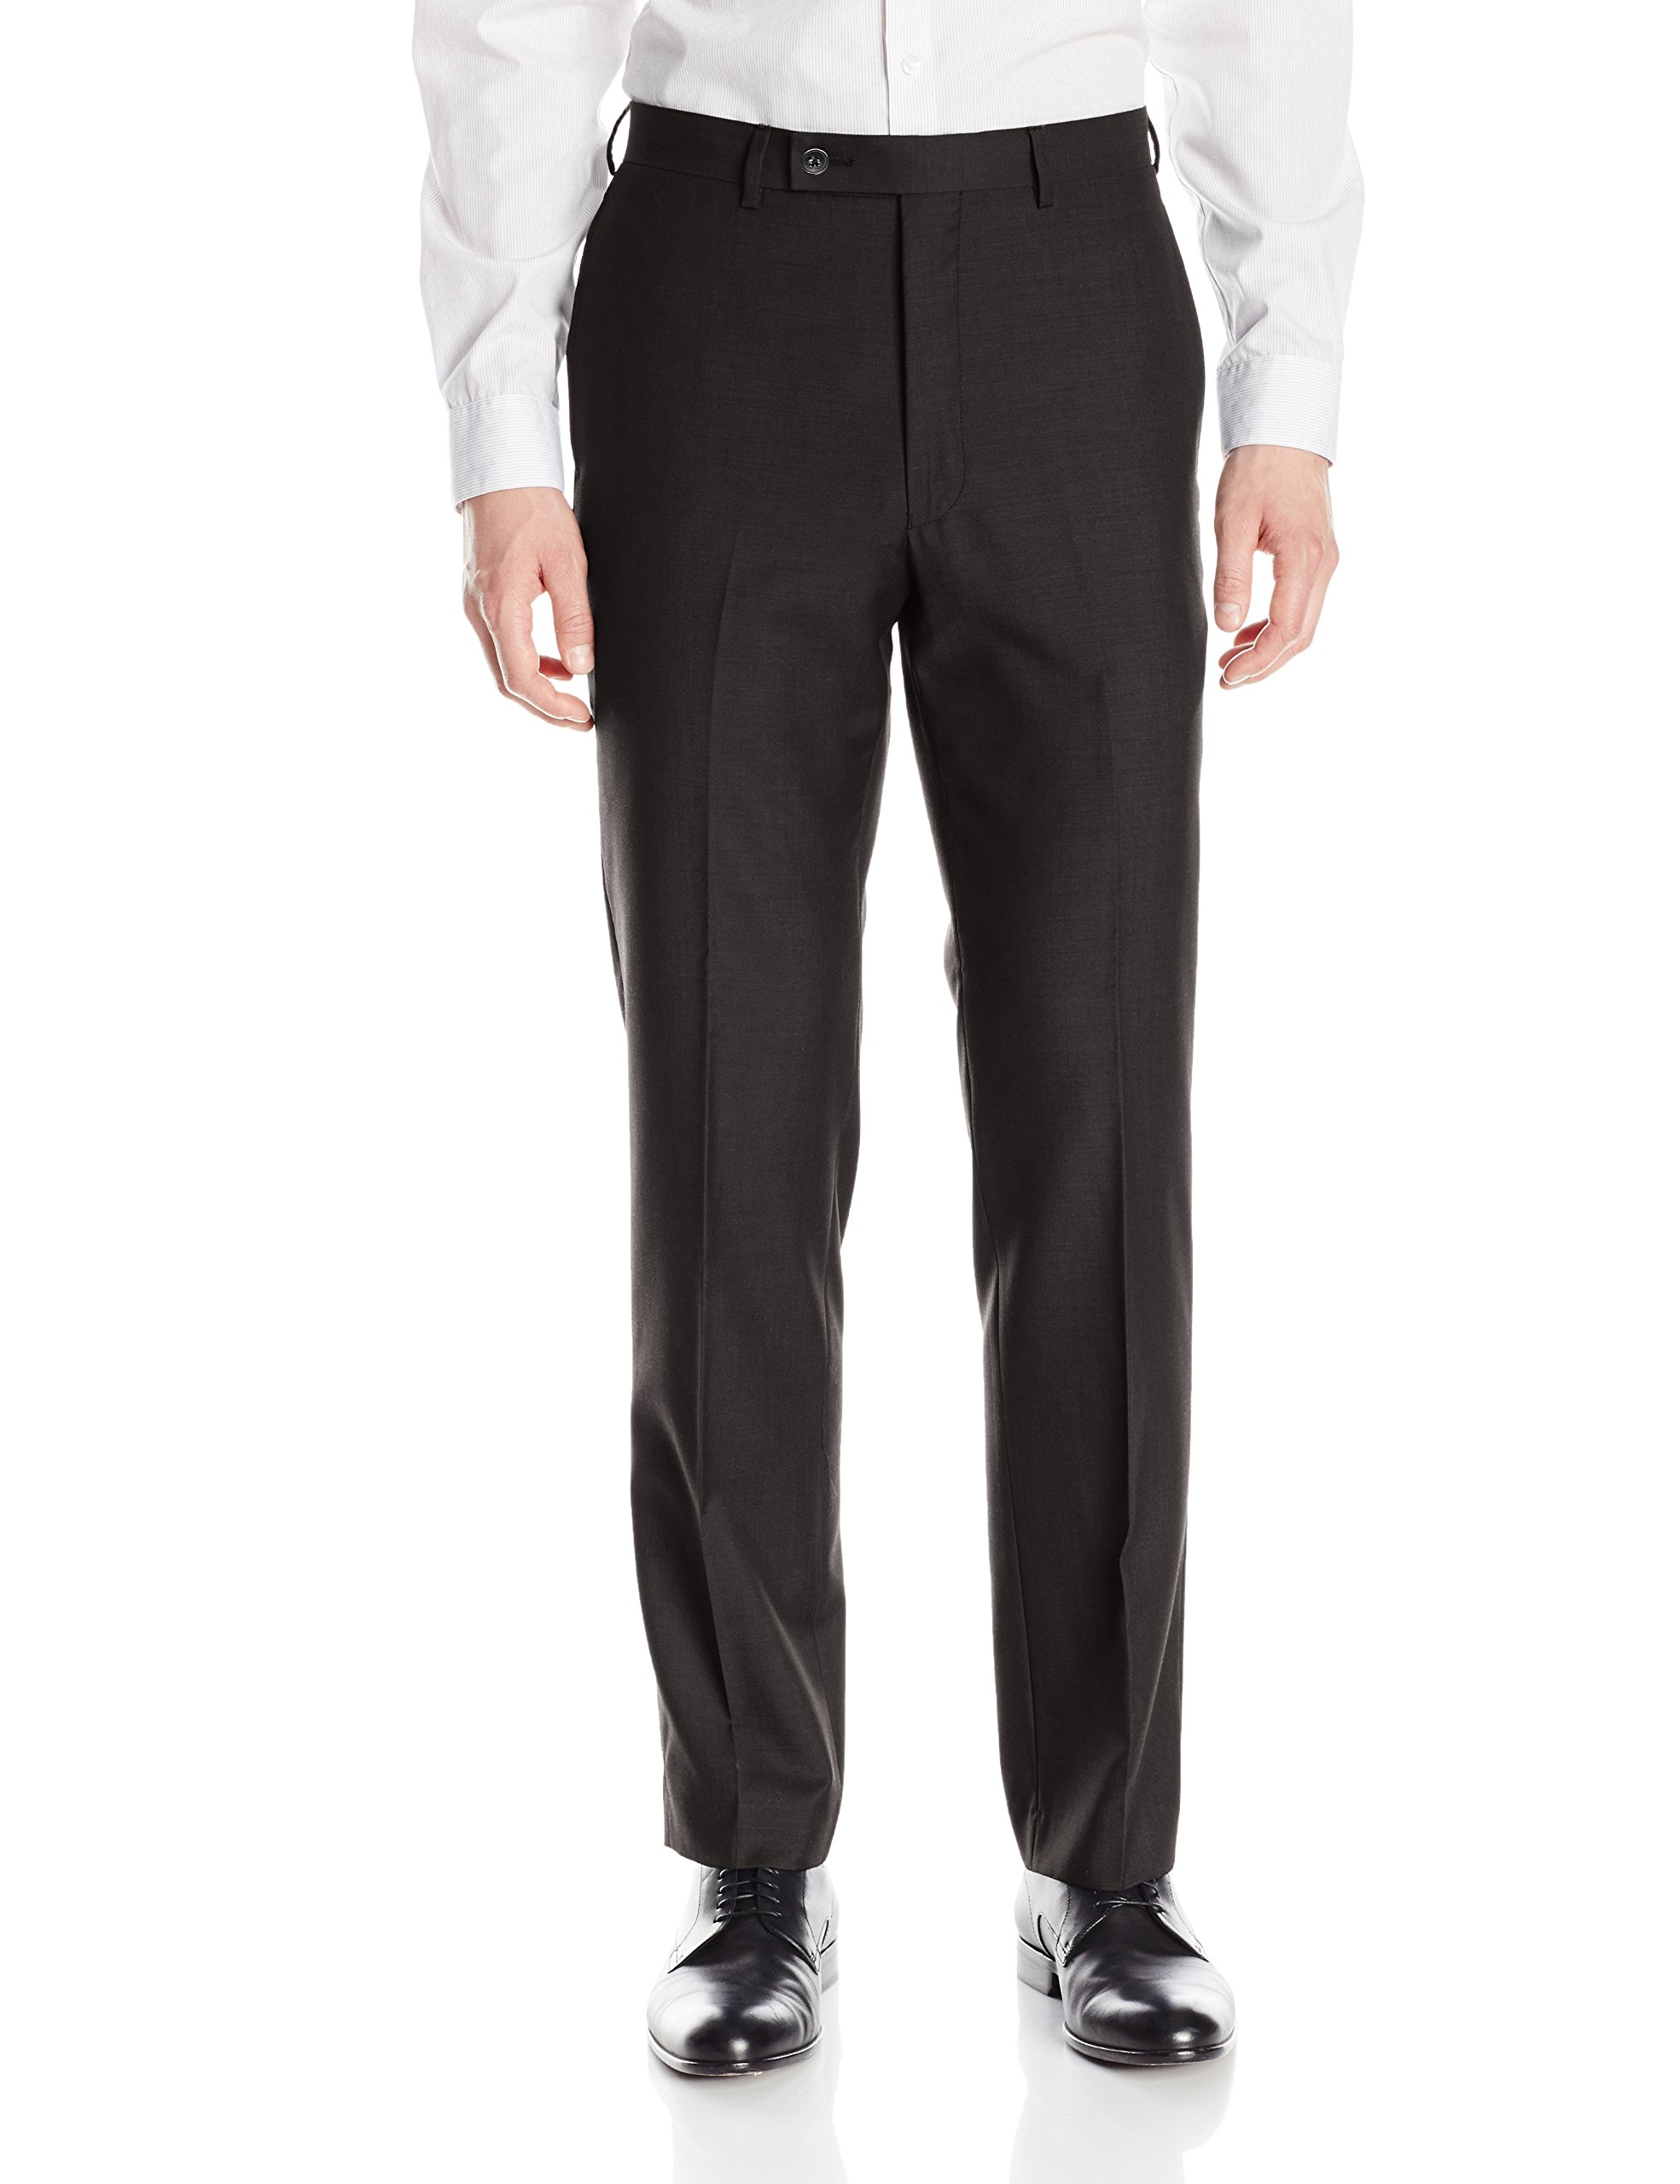 Calvin Klein Men's X-Fit Slim Stretch Suit Separate (Blazer and Pant), Black, 32W x 30L